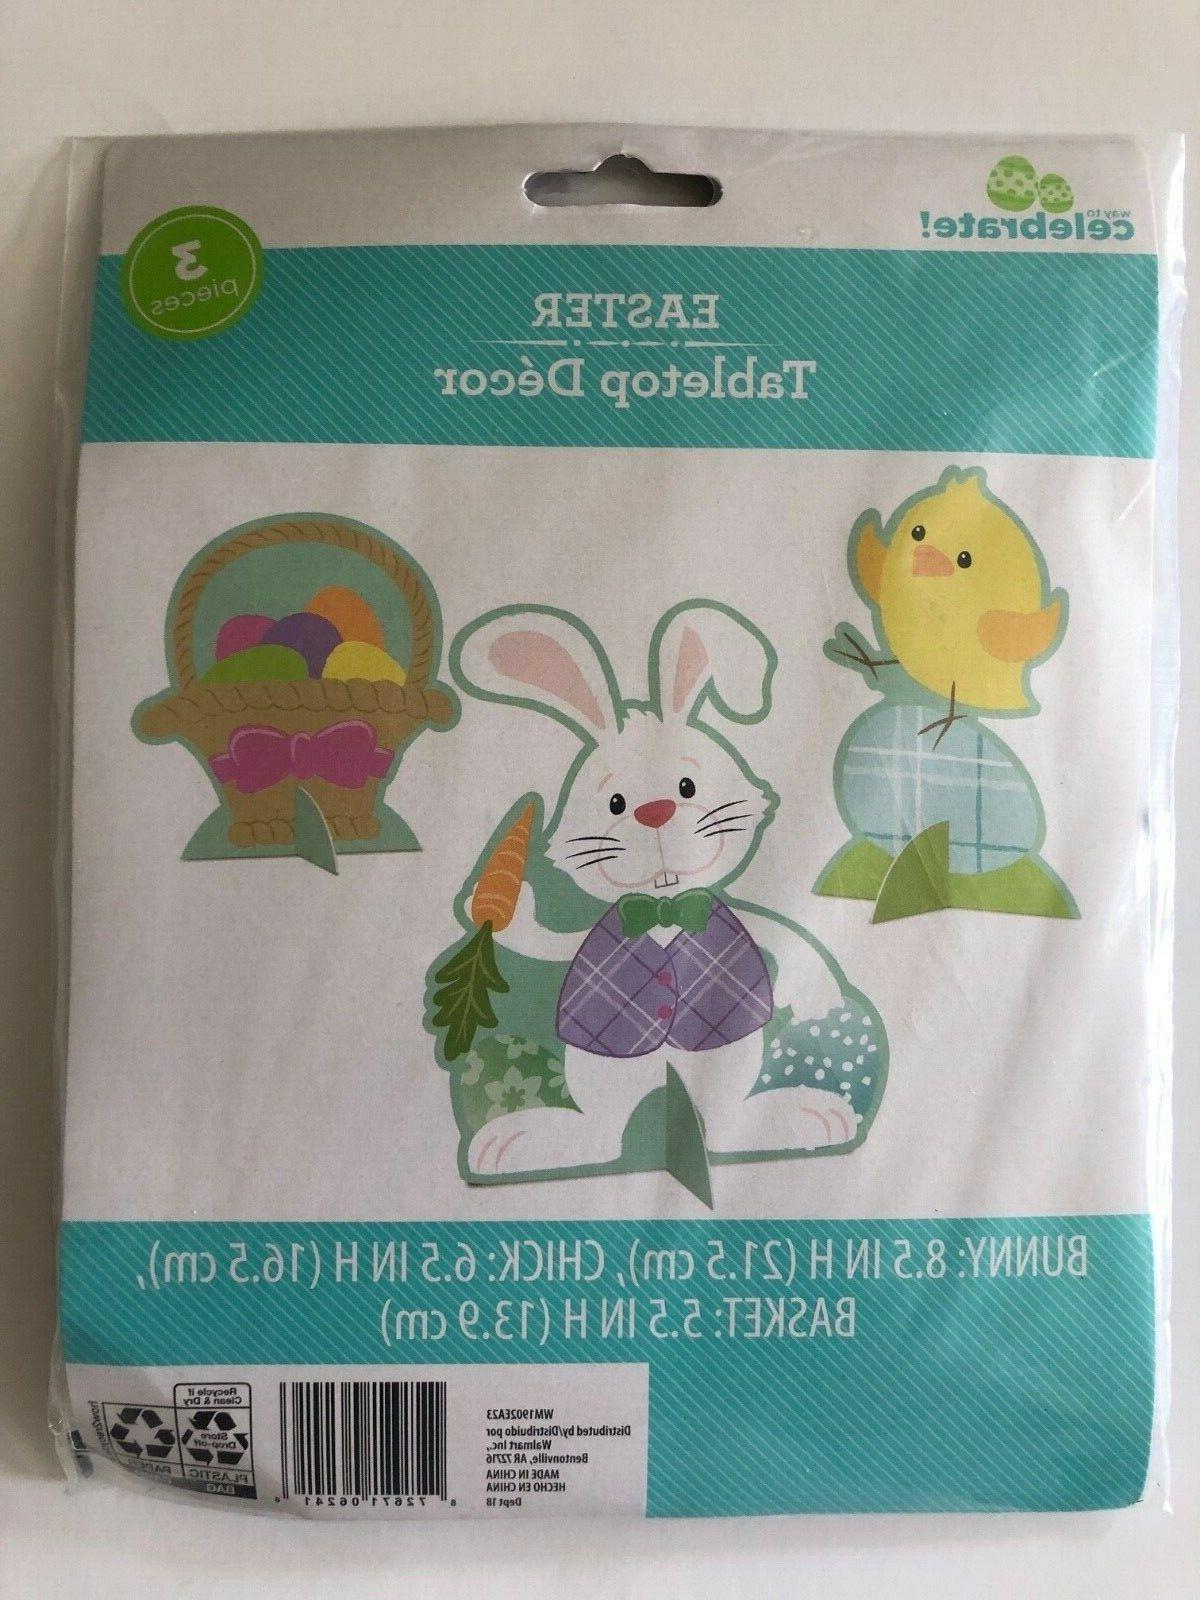 happy easter table top decor cardboard center